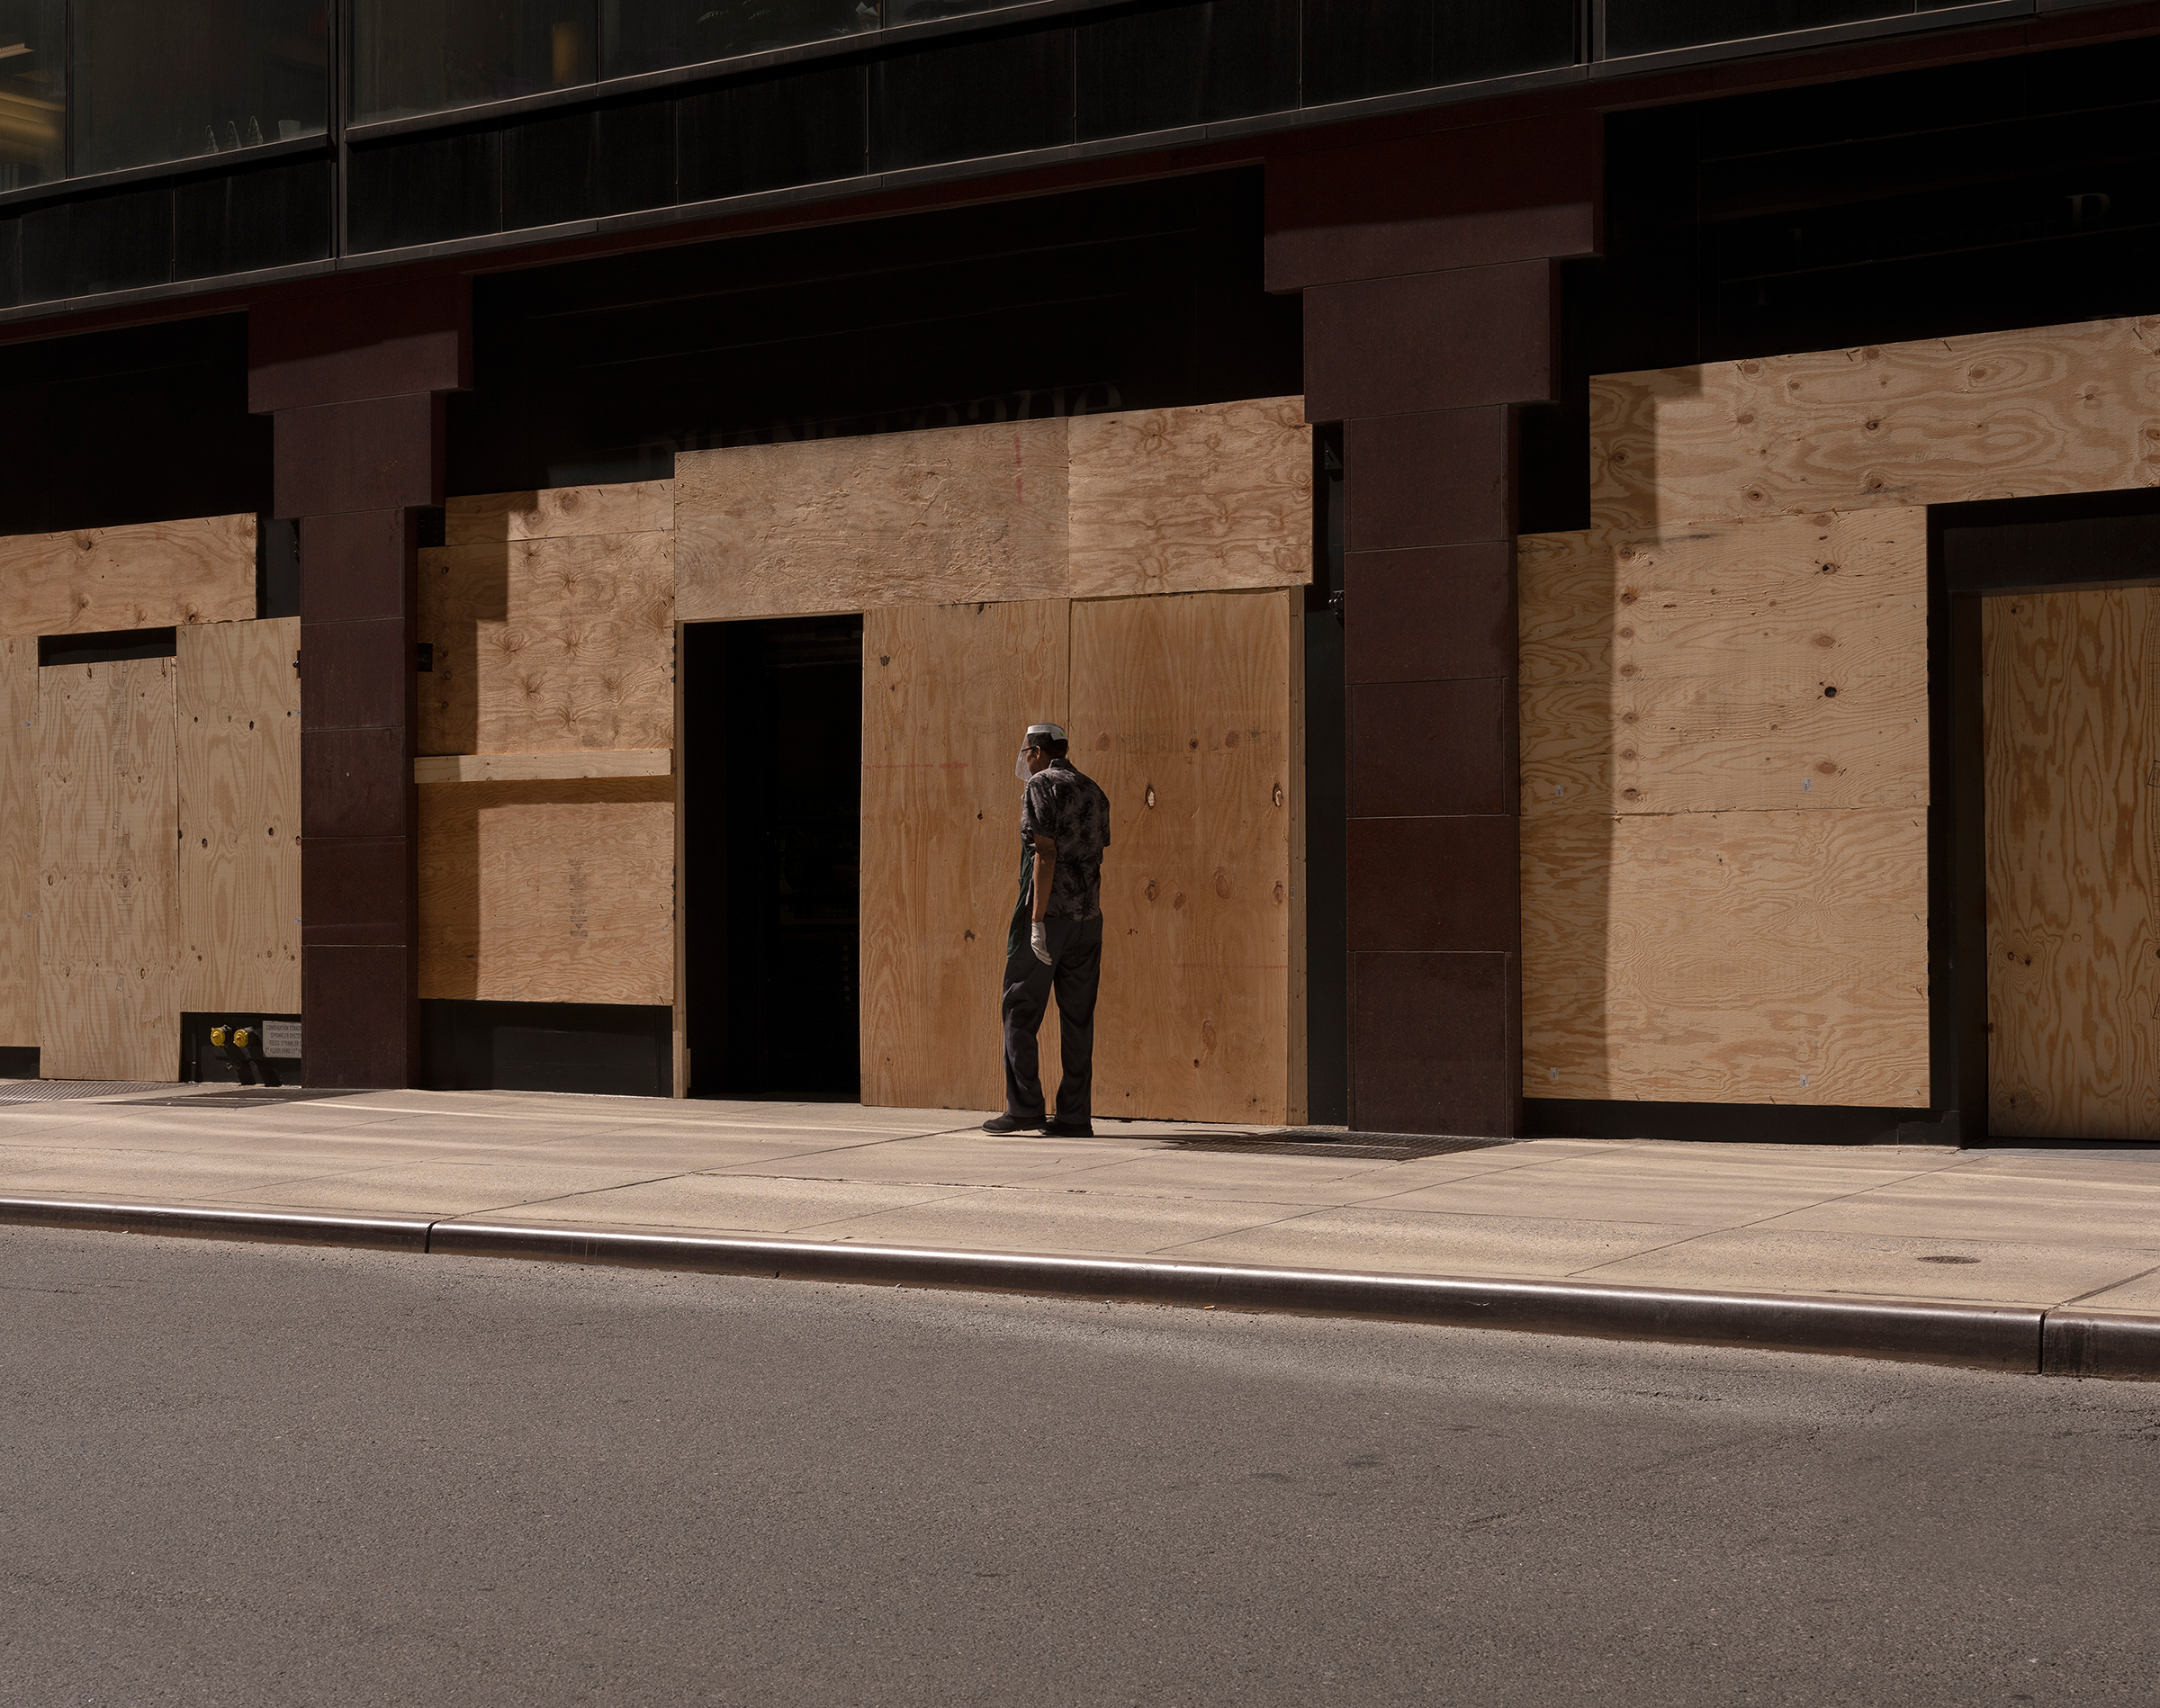 Businesses remain boarded up in mid-Manhattan, with U.S. unemployment at 11.1% in June